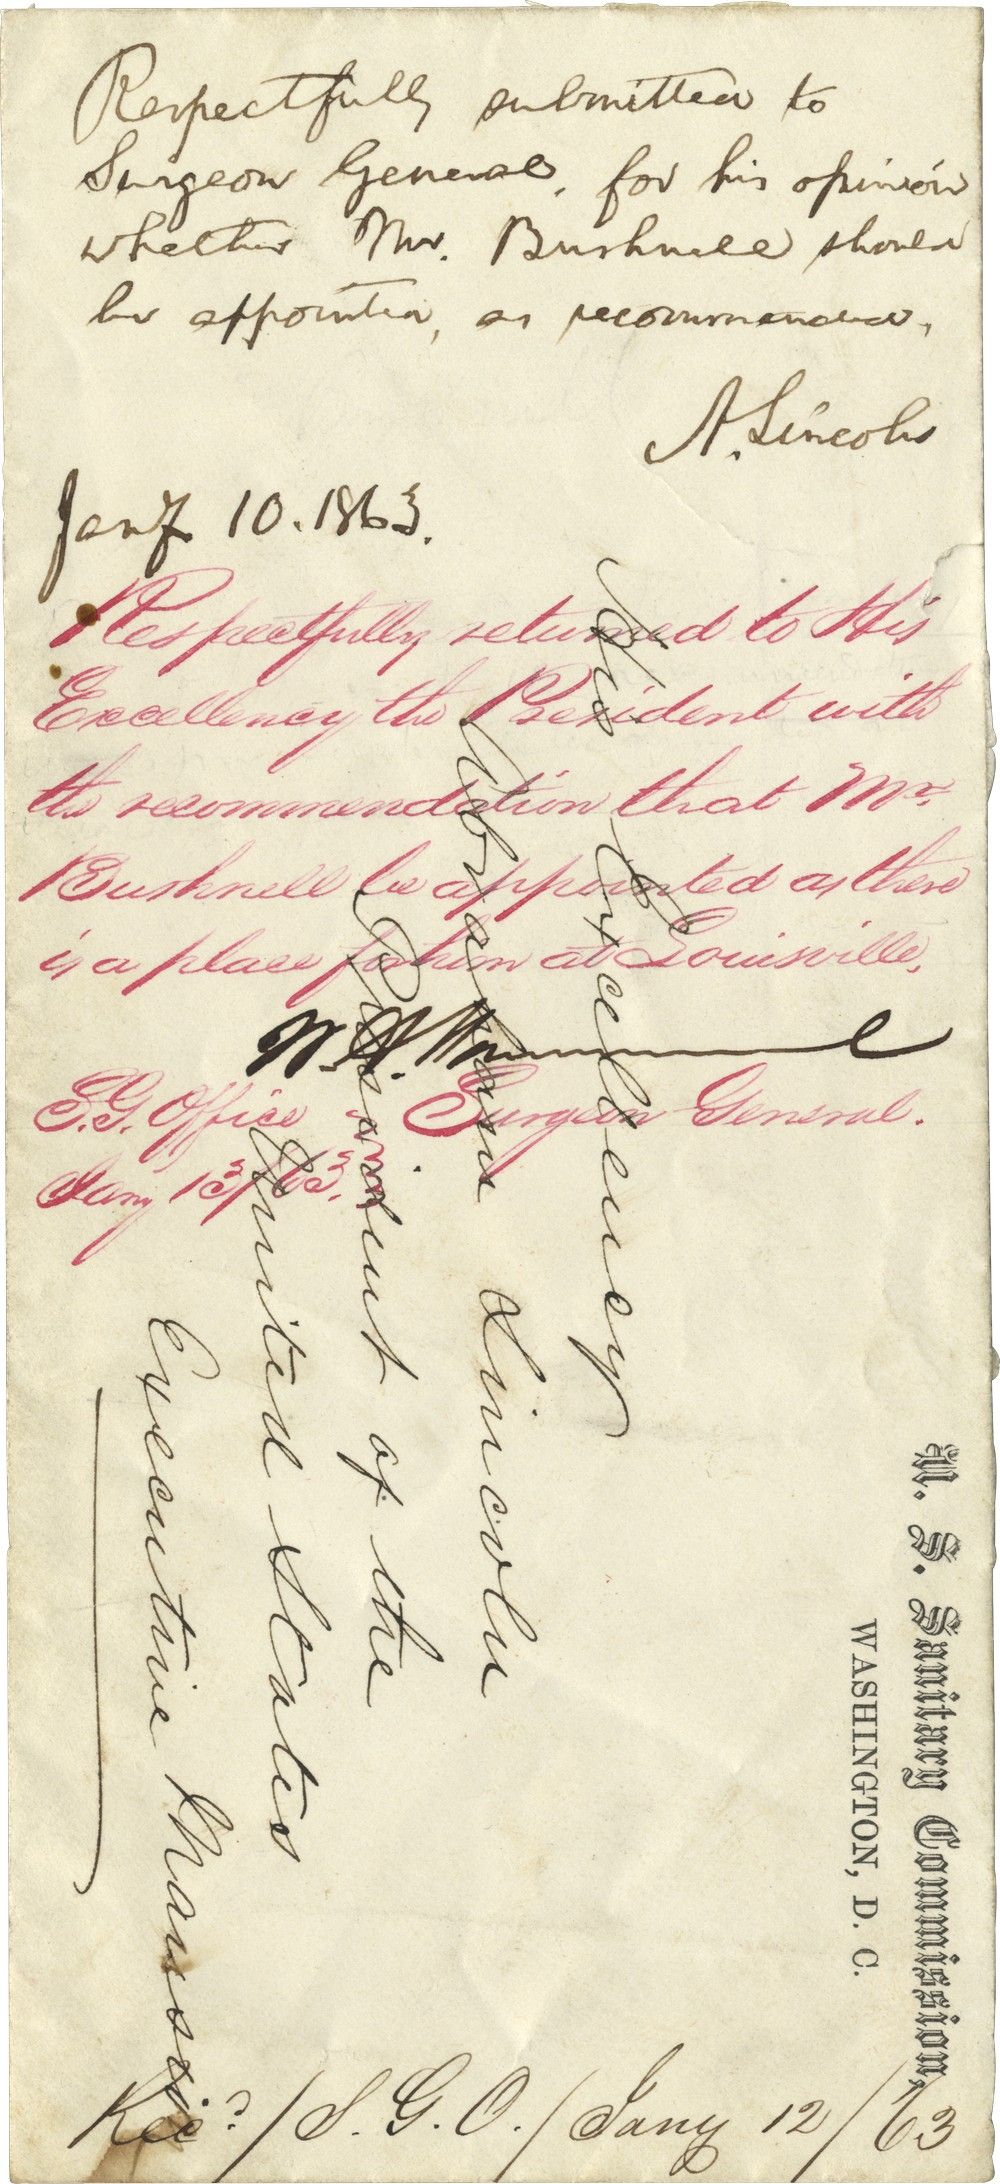 Abraham Lincoln Queries the Surgeon General of the Army About an Appointment